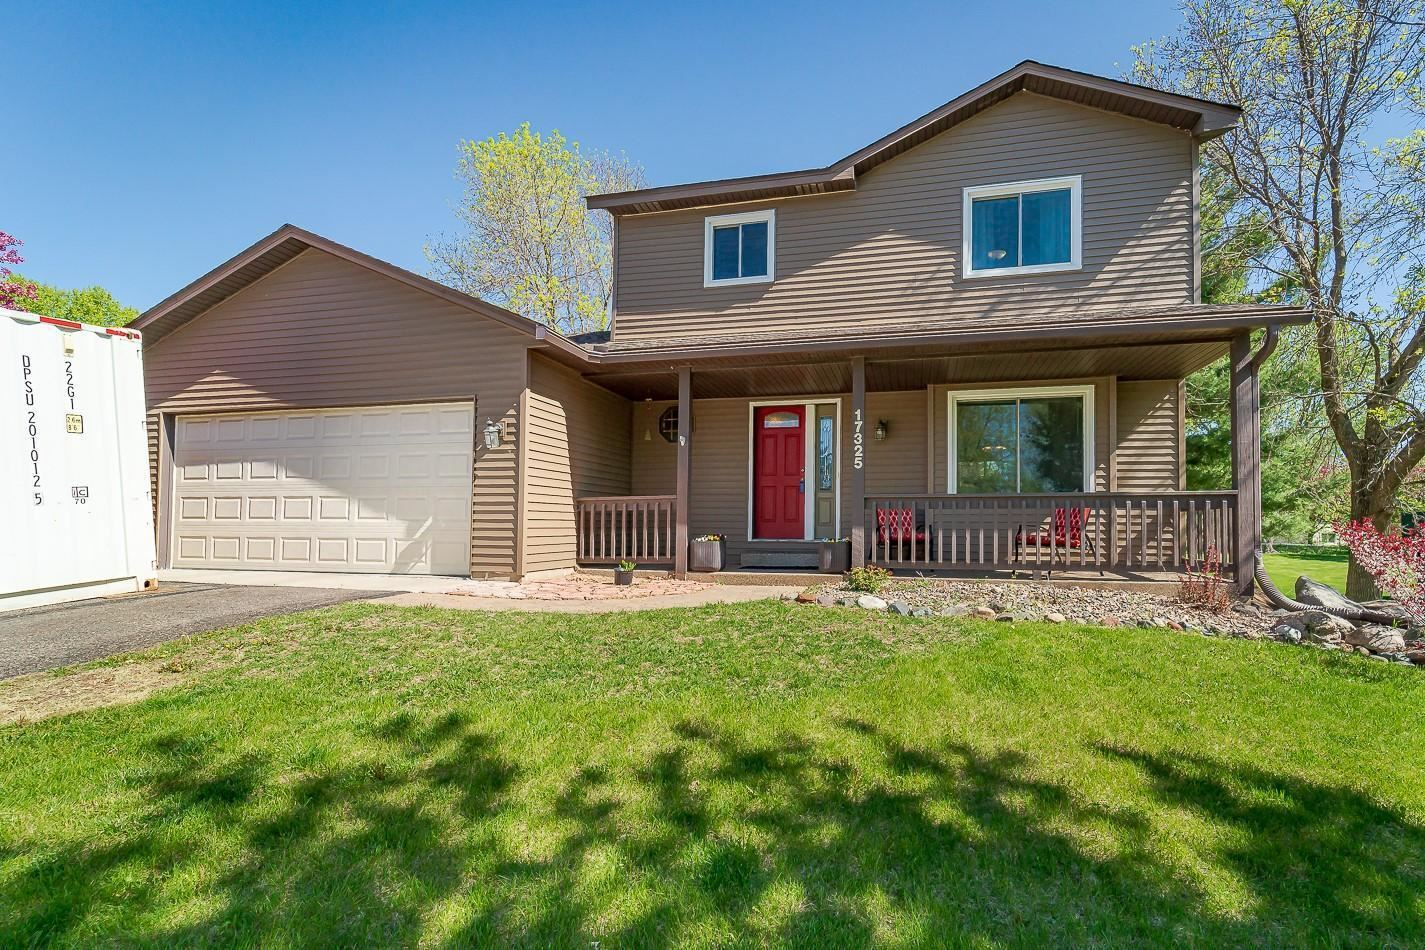 Photo of 17325 Ipswich Way, Lakeville, MN 55044 (MLS # 5753249)